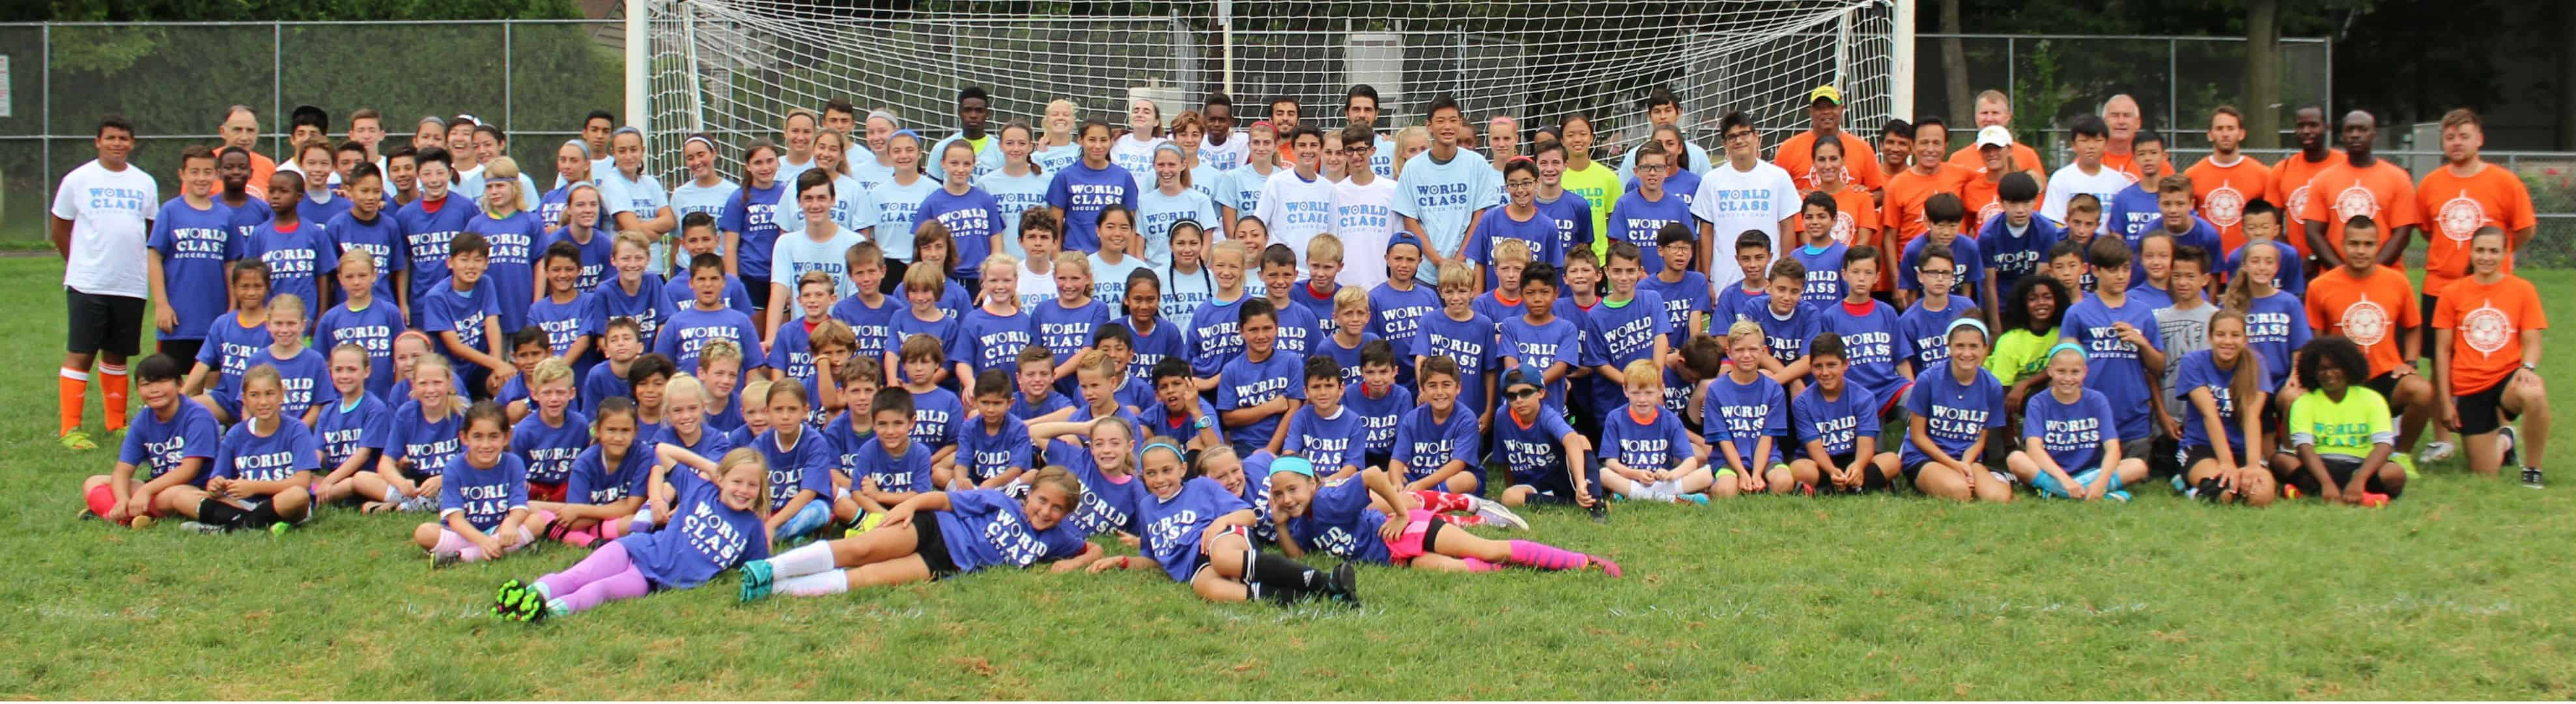 2019 World Class Soccer Camp | NJ's Top Summer Camp for 30 years